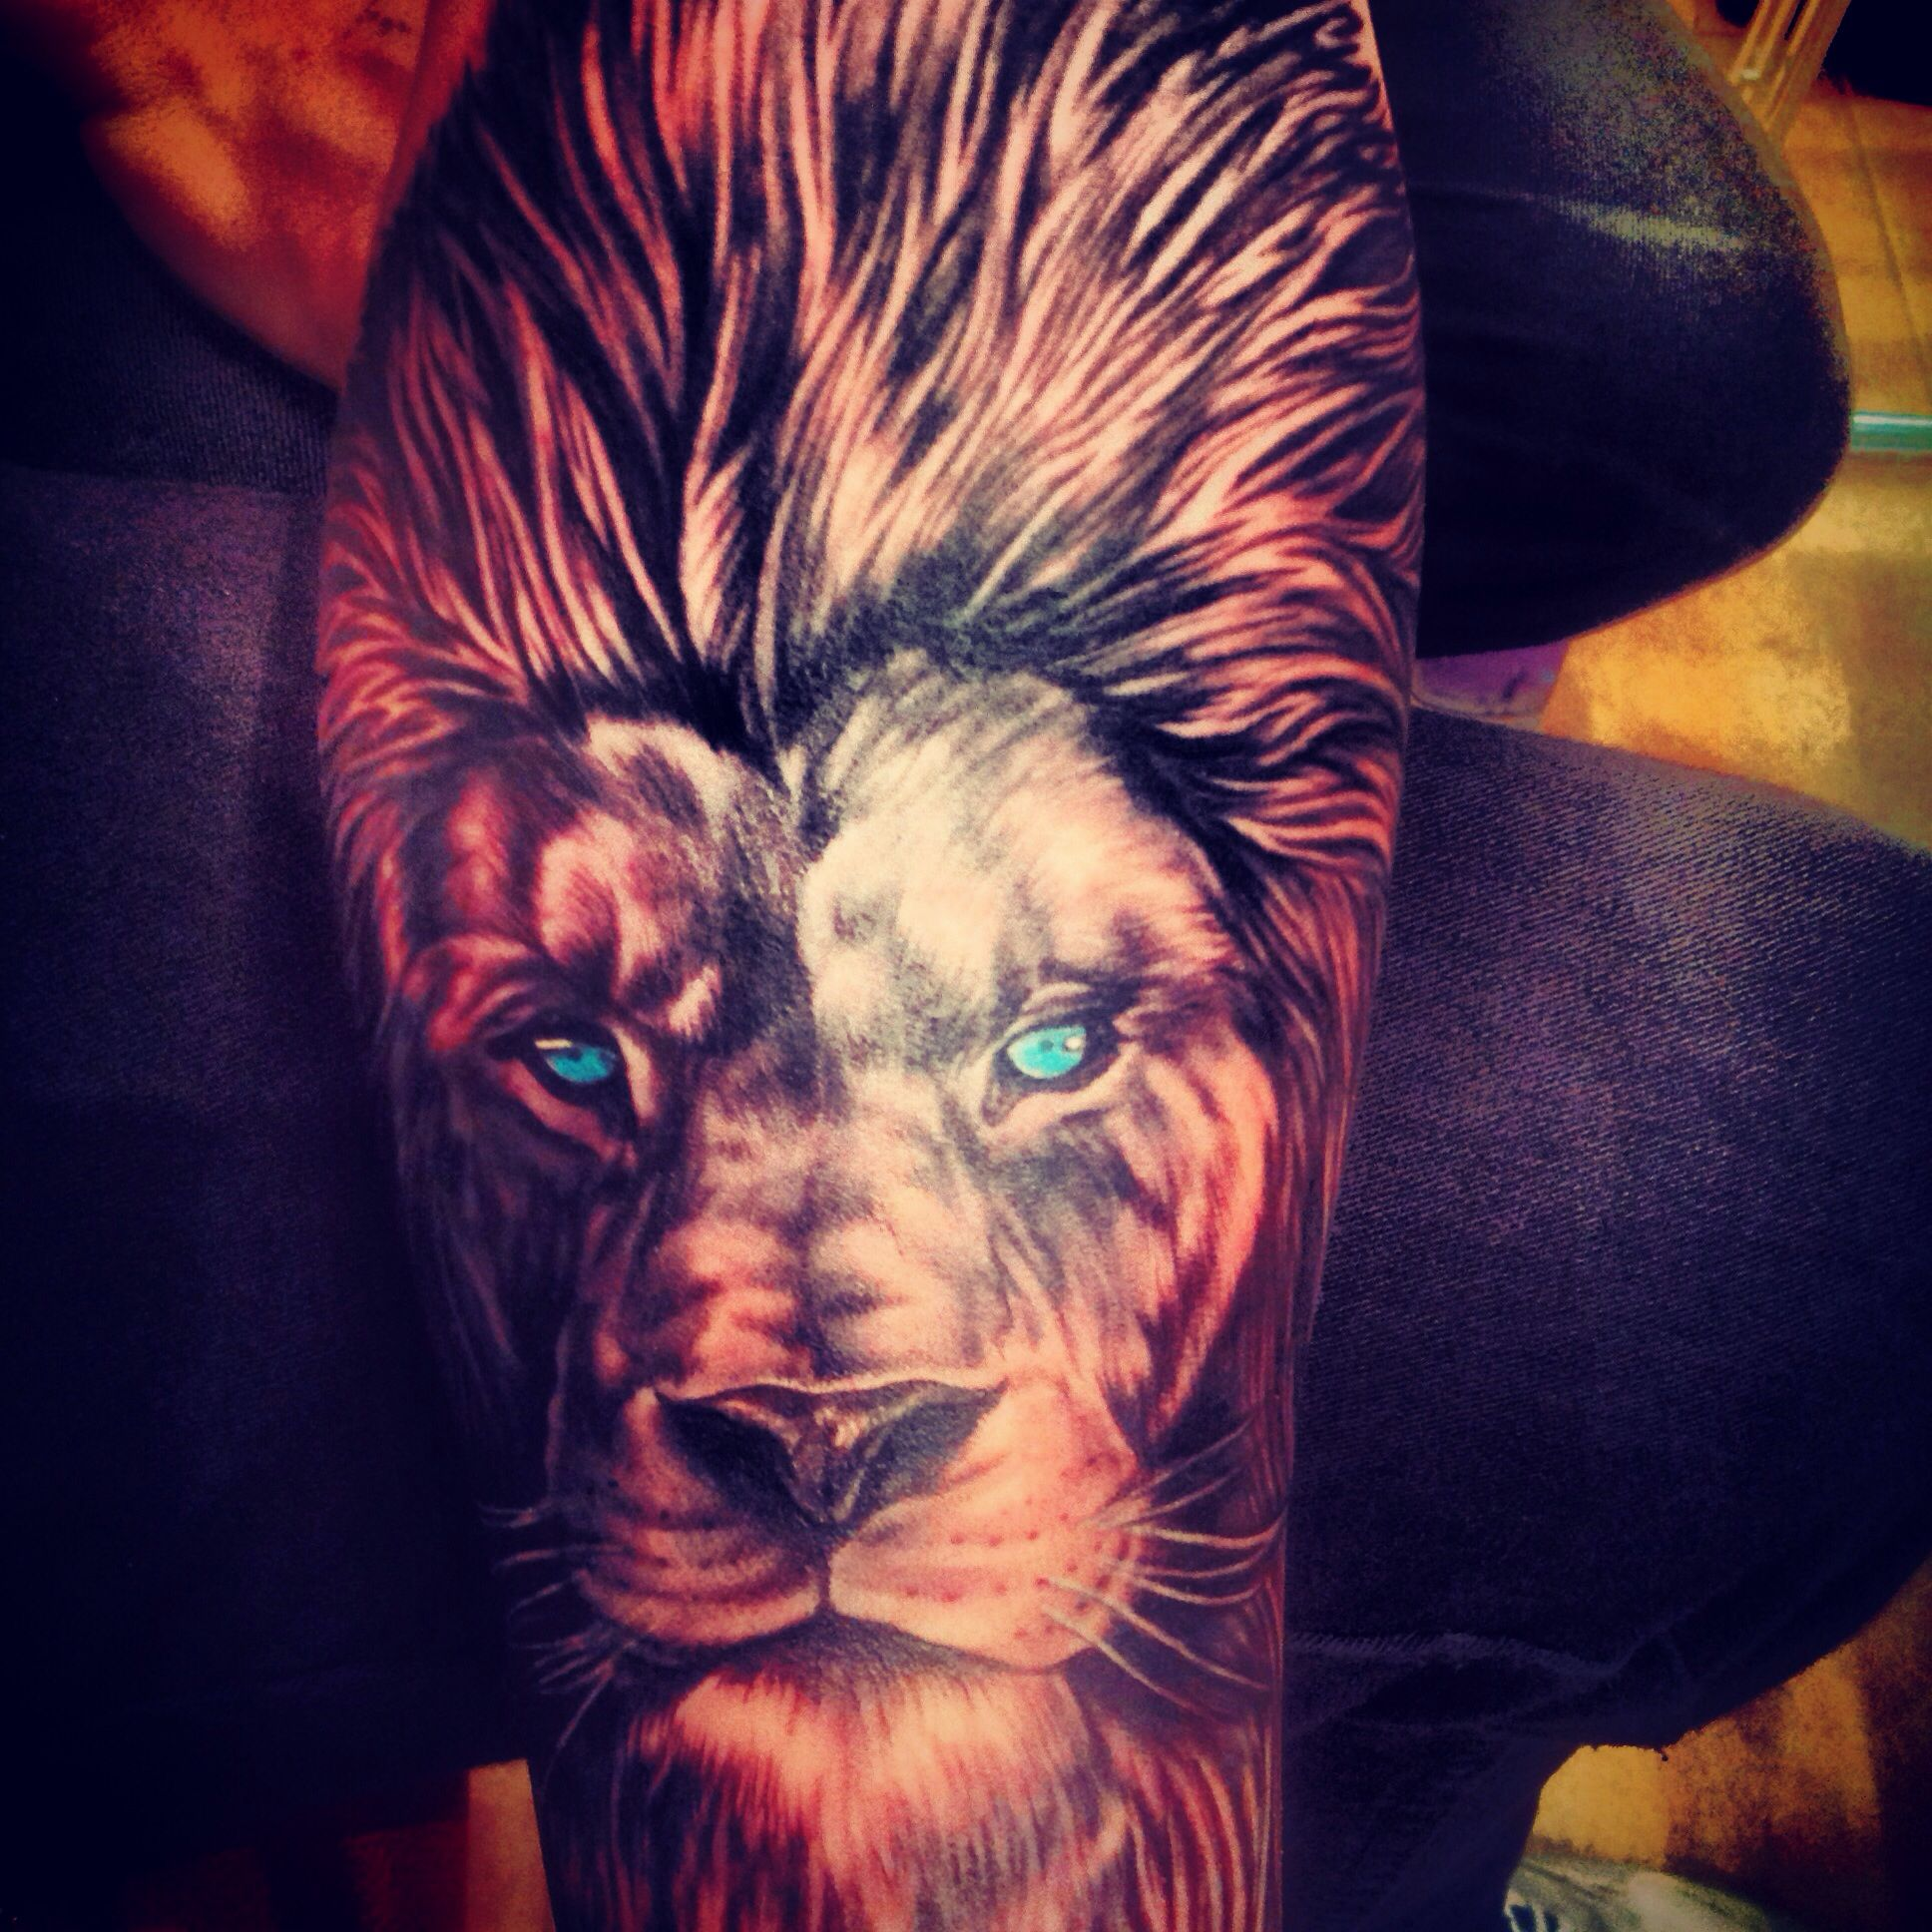 Lion tattoo, males arm, amazing art, men are hotter with